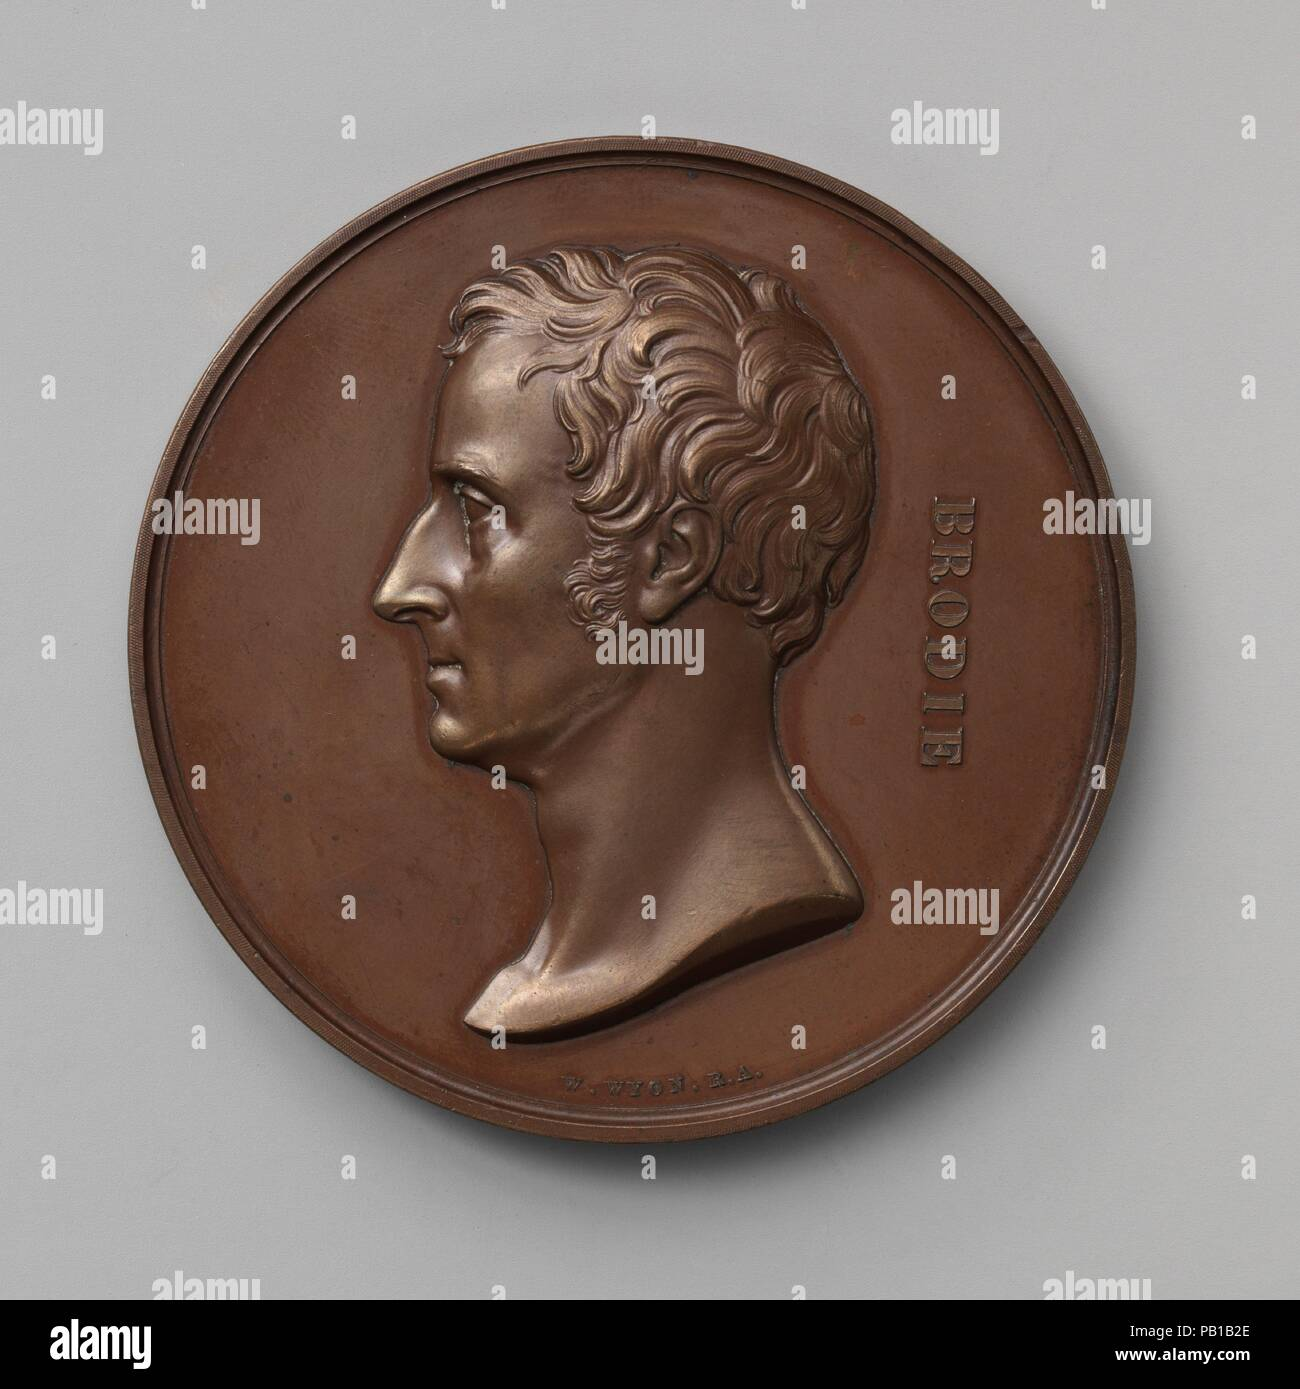 In Honor of the Surgical and Pathological Discoveries of Sir Benjamin Collins Brodie, Bart., Sergeant-Surgeon to George IV, William IV, and Victoria (1783-1862). Artist: Medalist: William Wyon (British, Birmingham 1795-1851 Brighton). Culture: British, London. Dimensions: Diameter: 2 7/8 in. (7.3 cm). Date: 1841. Museum: Metropolitan Museum of Art, New York, USA. - Stock Image